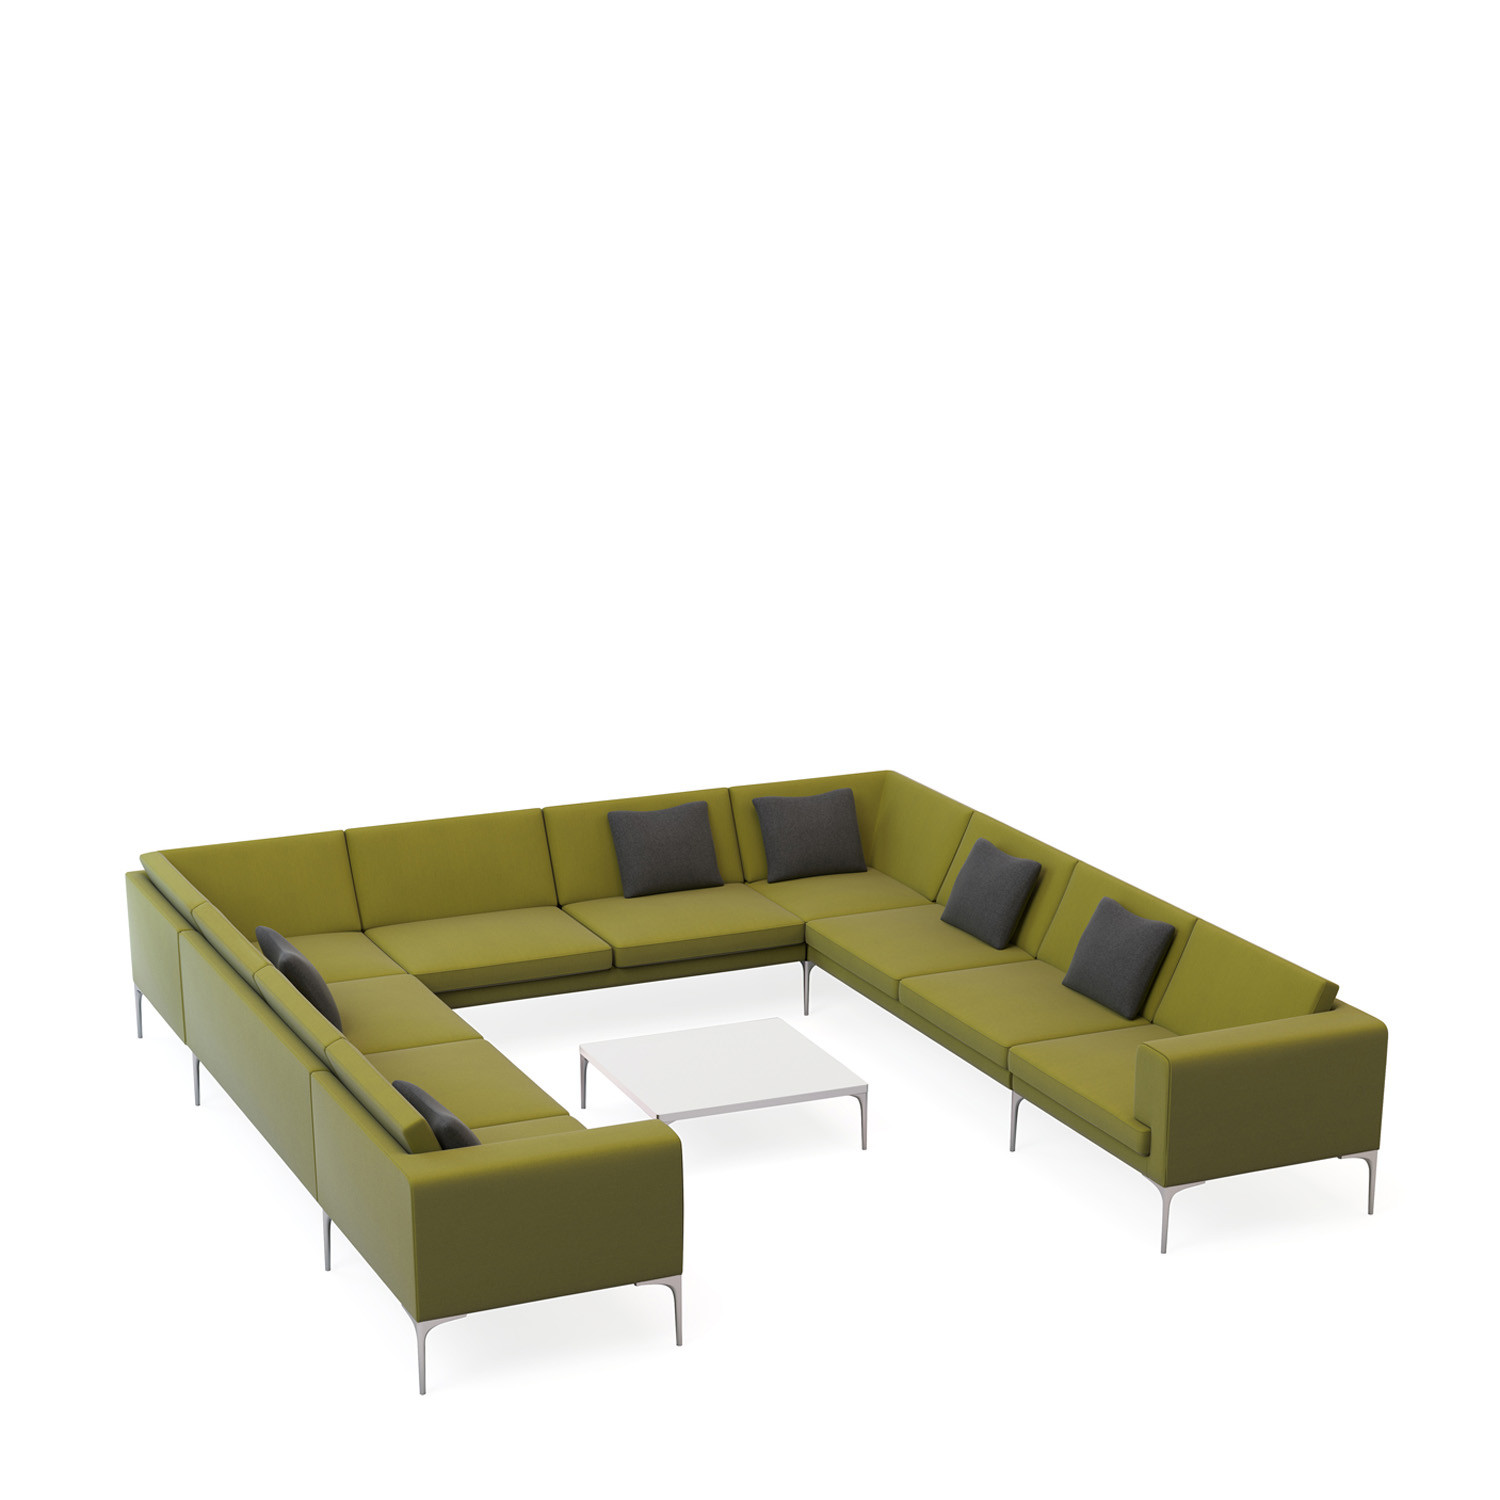 vale sofa system modular soft seating apres furniture. Black Bedroom Furniture Sets. Home Design Ideas